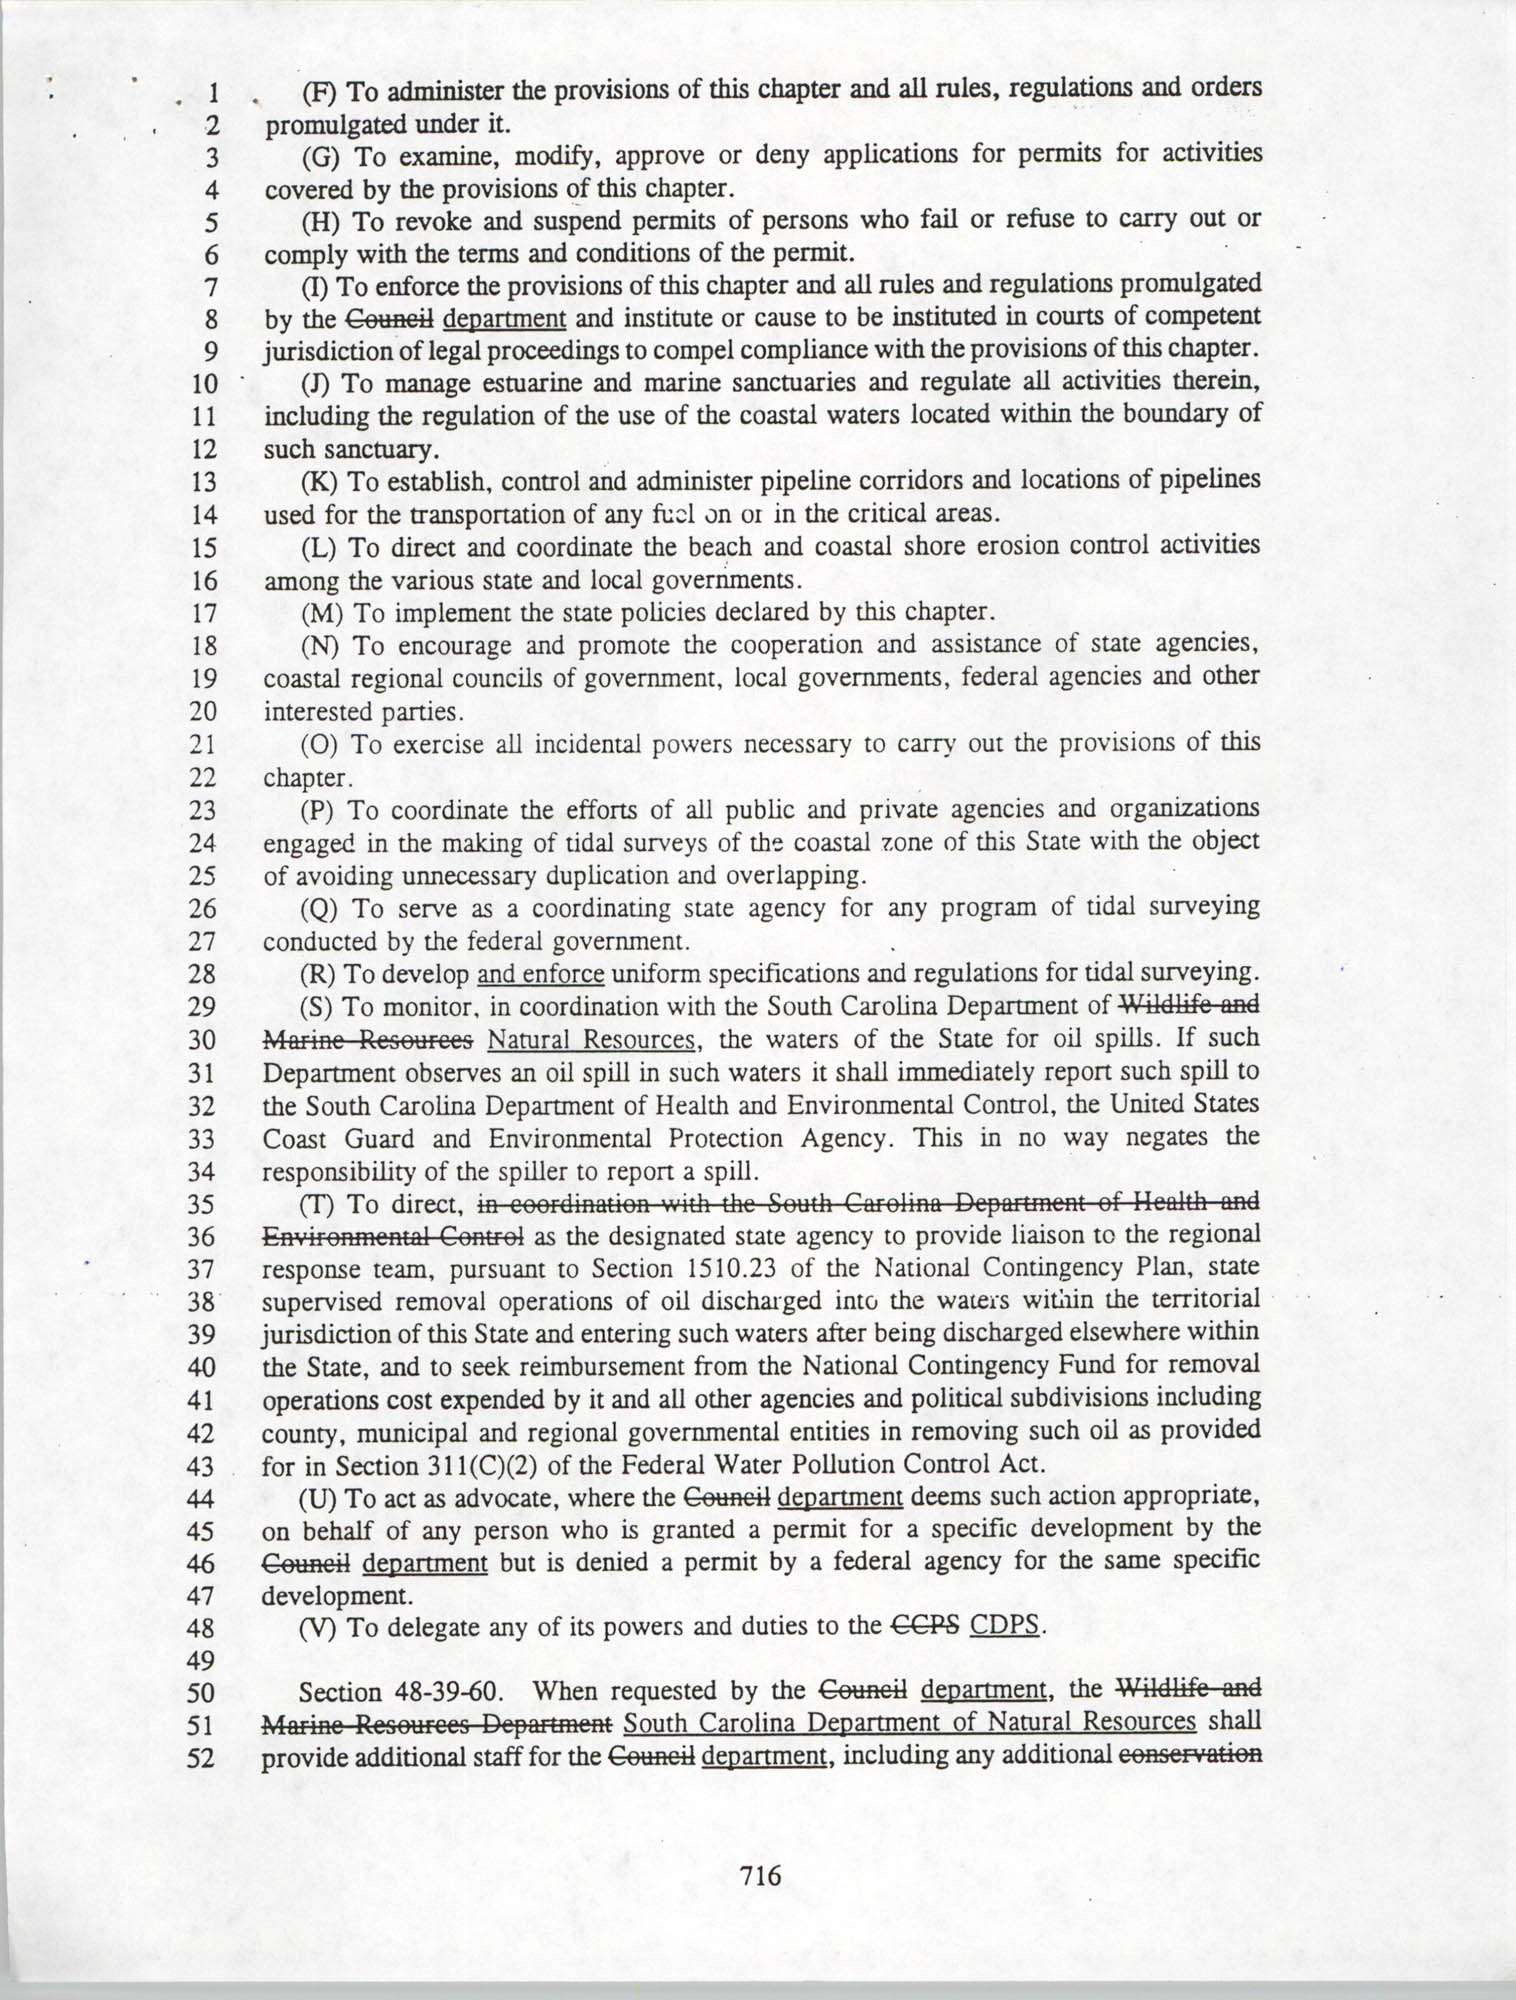 NAACP State Conference and Local Branch Community Development Resource Center Manual, Page 40